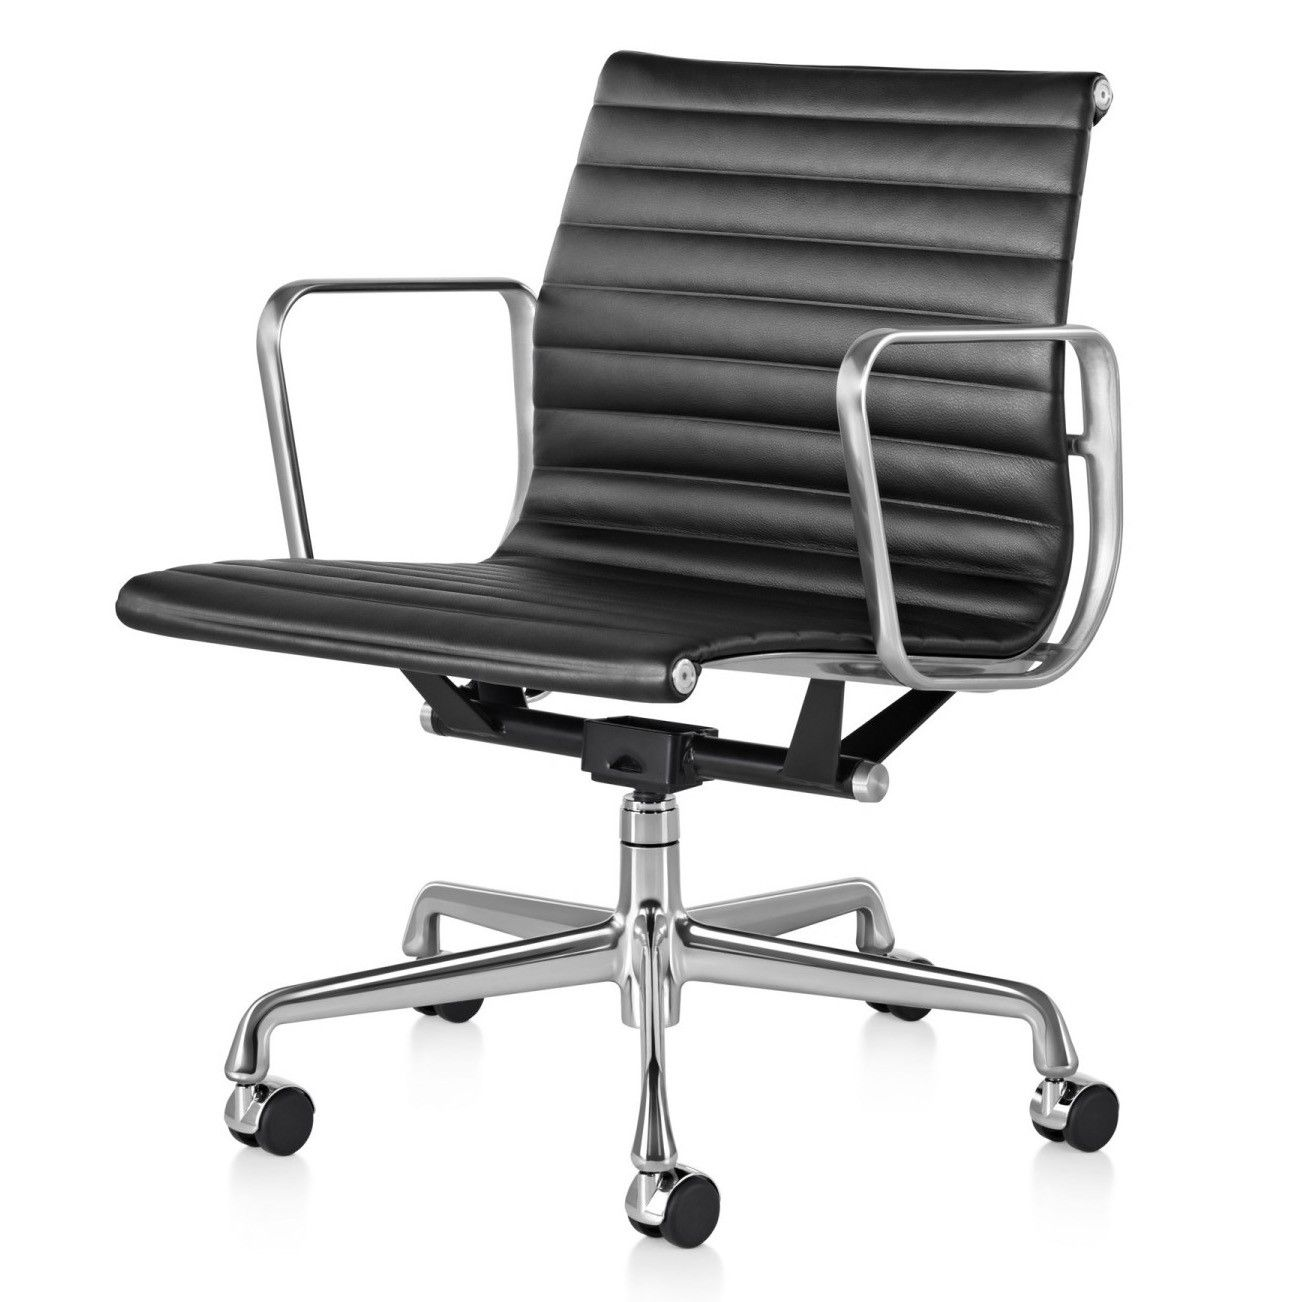 herman miller eames aluminum group management chair seating herman miller shop schreibtischsthlebrosthleeames - Herman Miller Schreibtischsthle